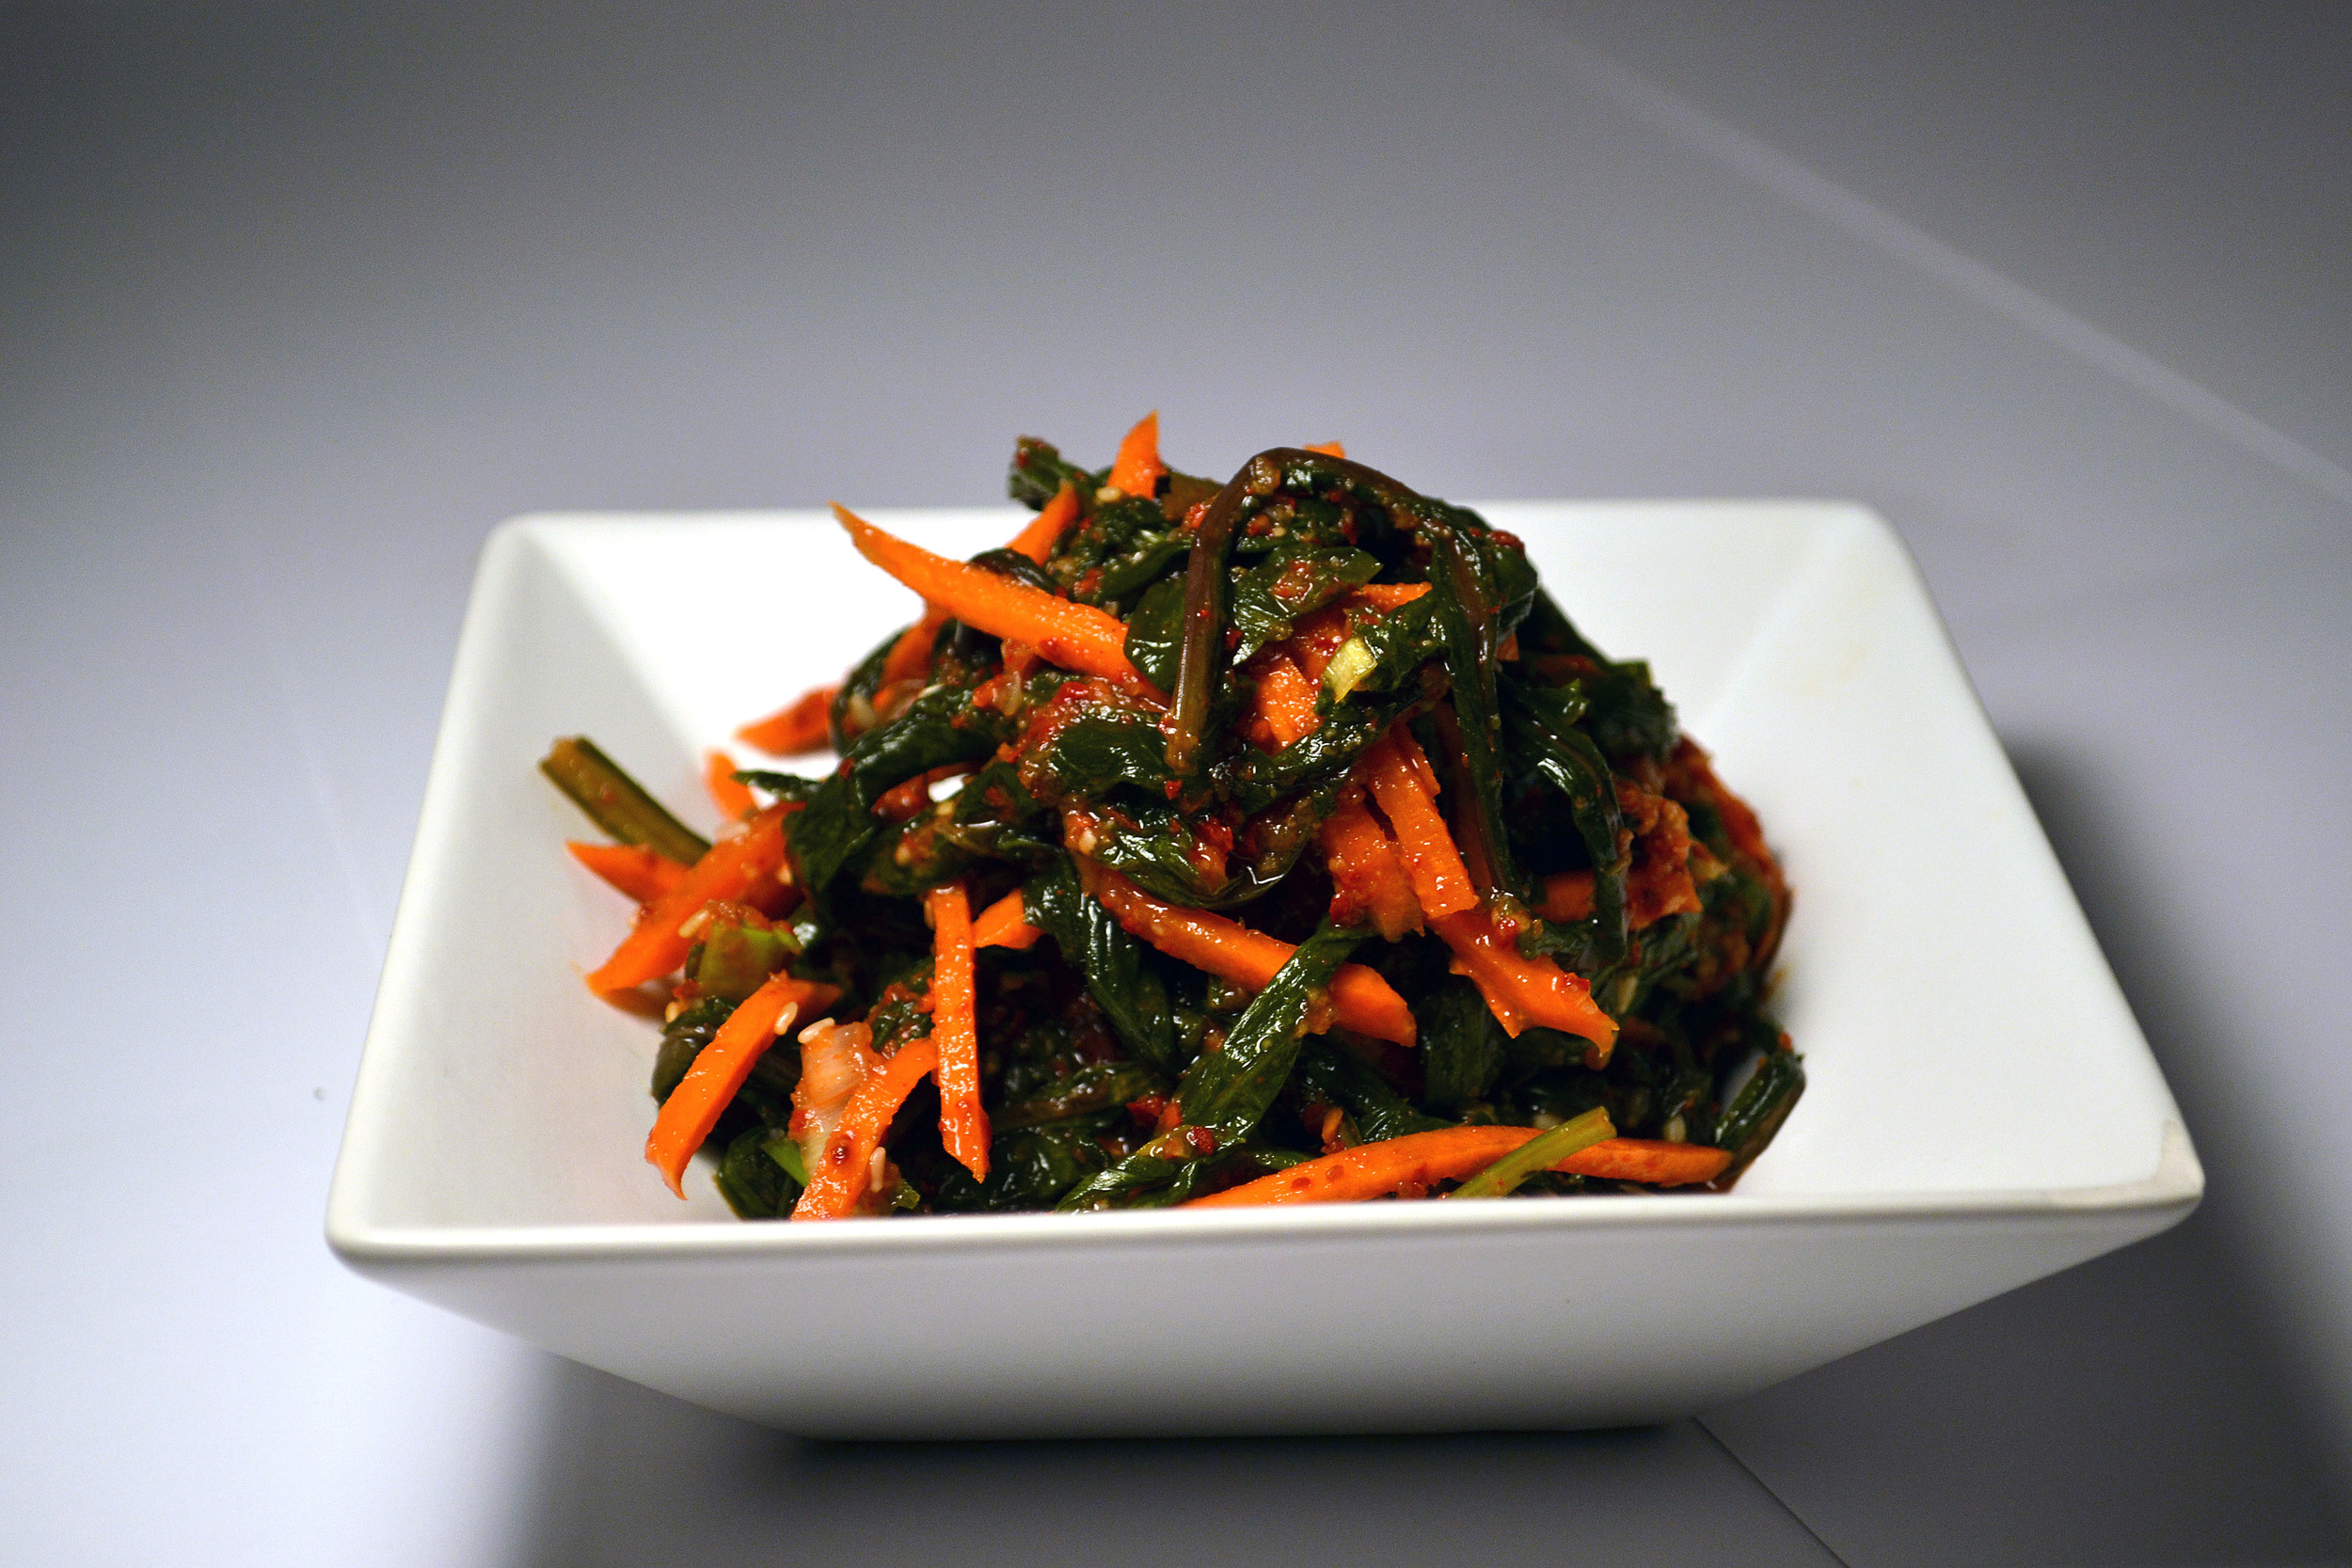 DANDELION KIMCHI:Did you know dandelions support liver health, nourish bones and joints, and even stimulate urinary function to promote cleansing? Who knew such a common plant could do so much? Now you can try it in Kimchi form!